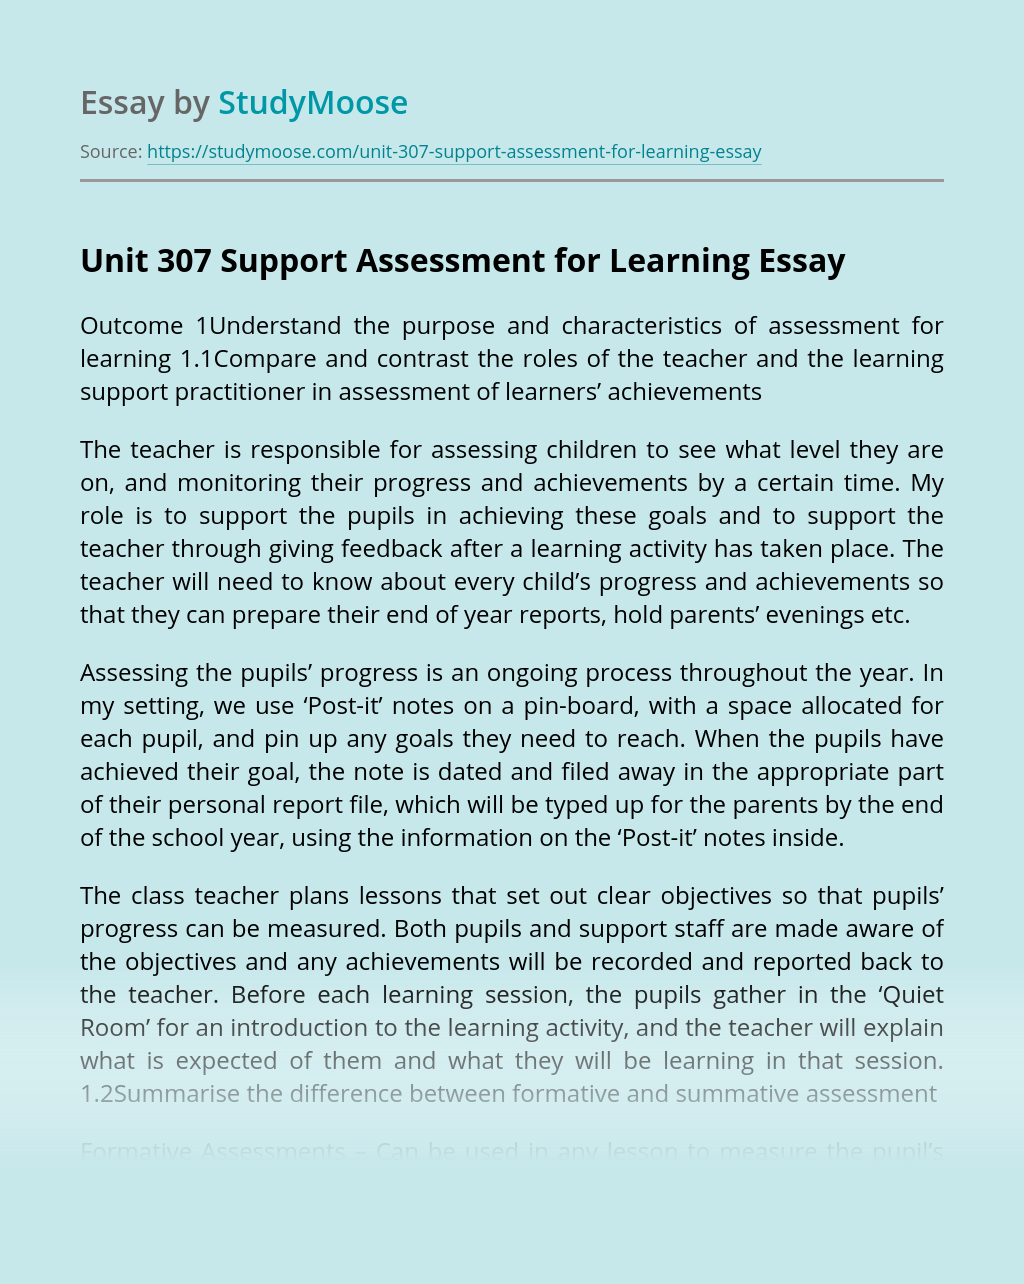 Unit 307 Support Assessment for Learning